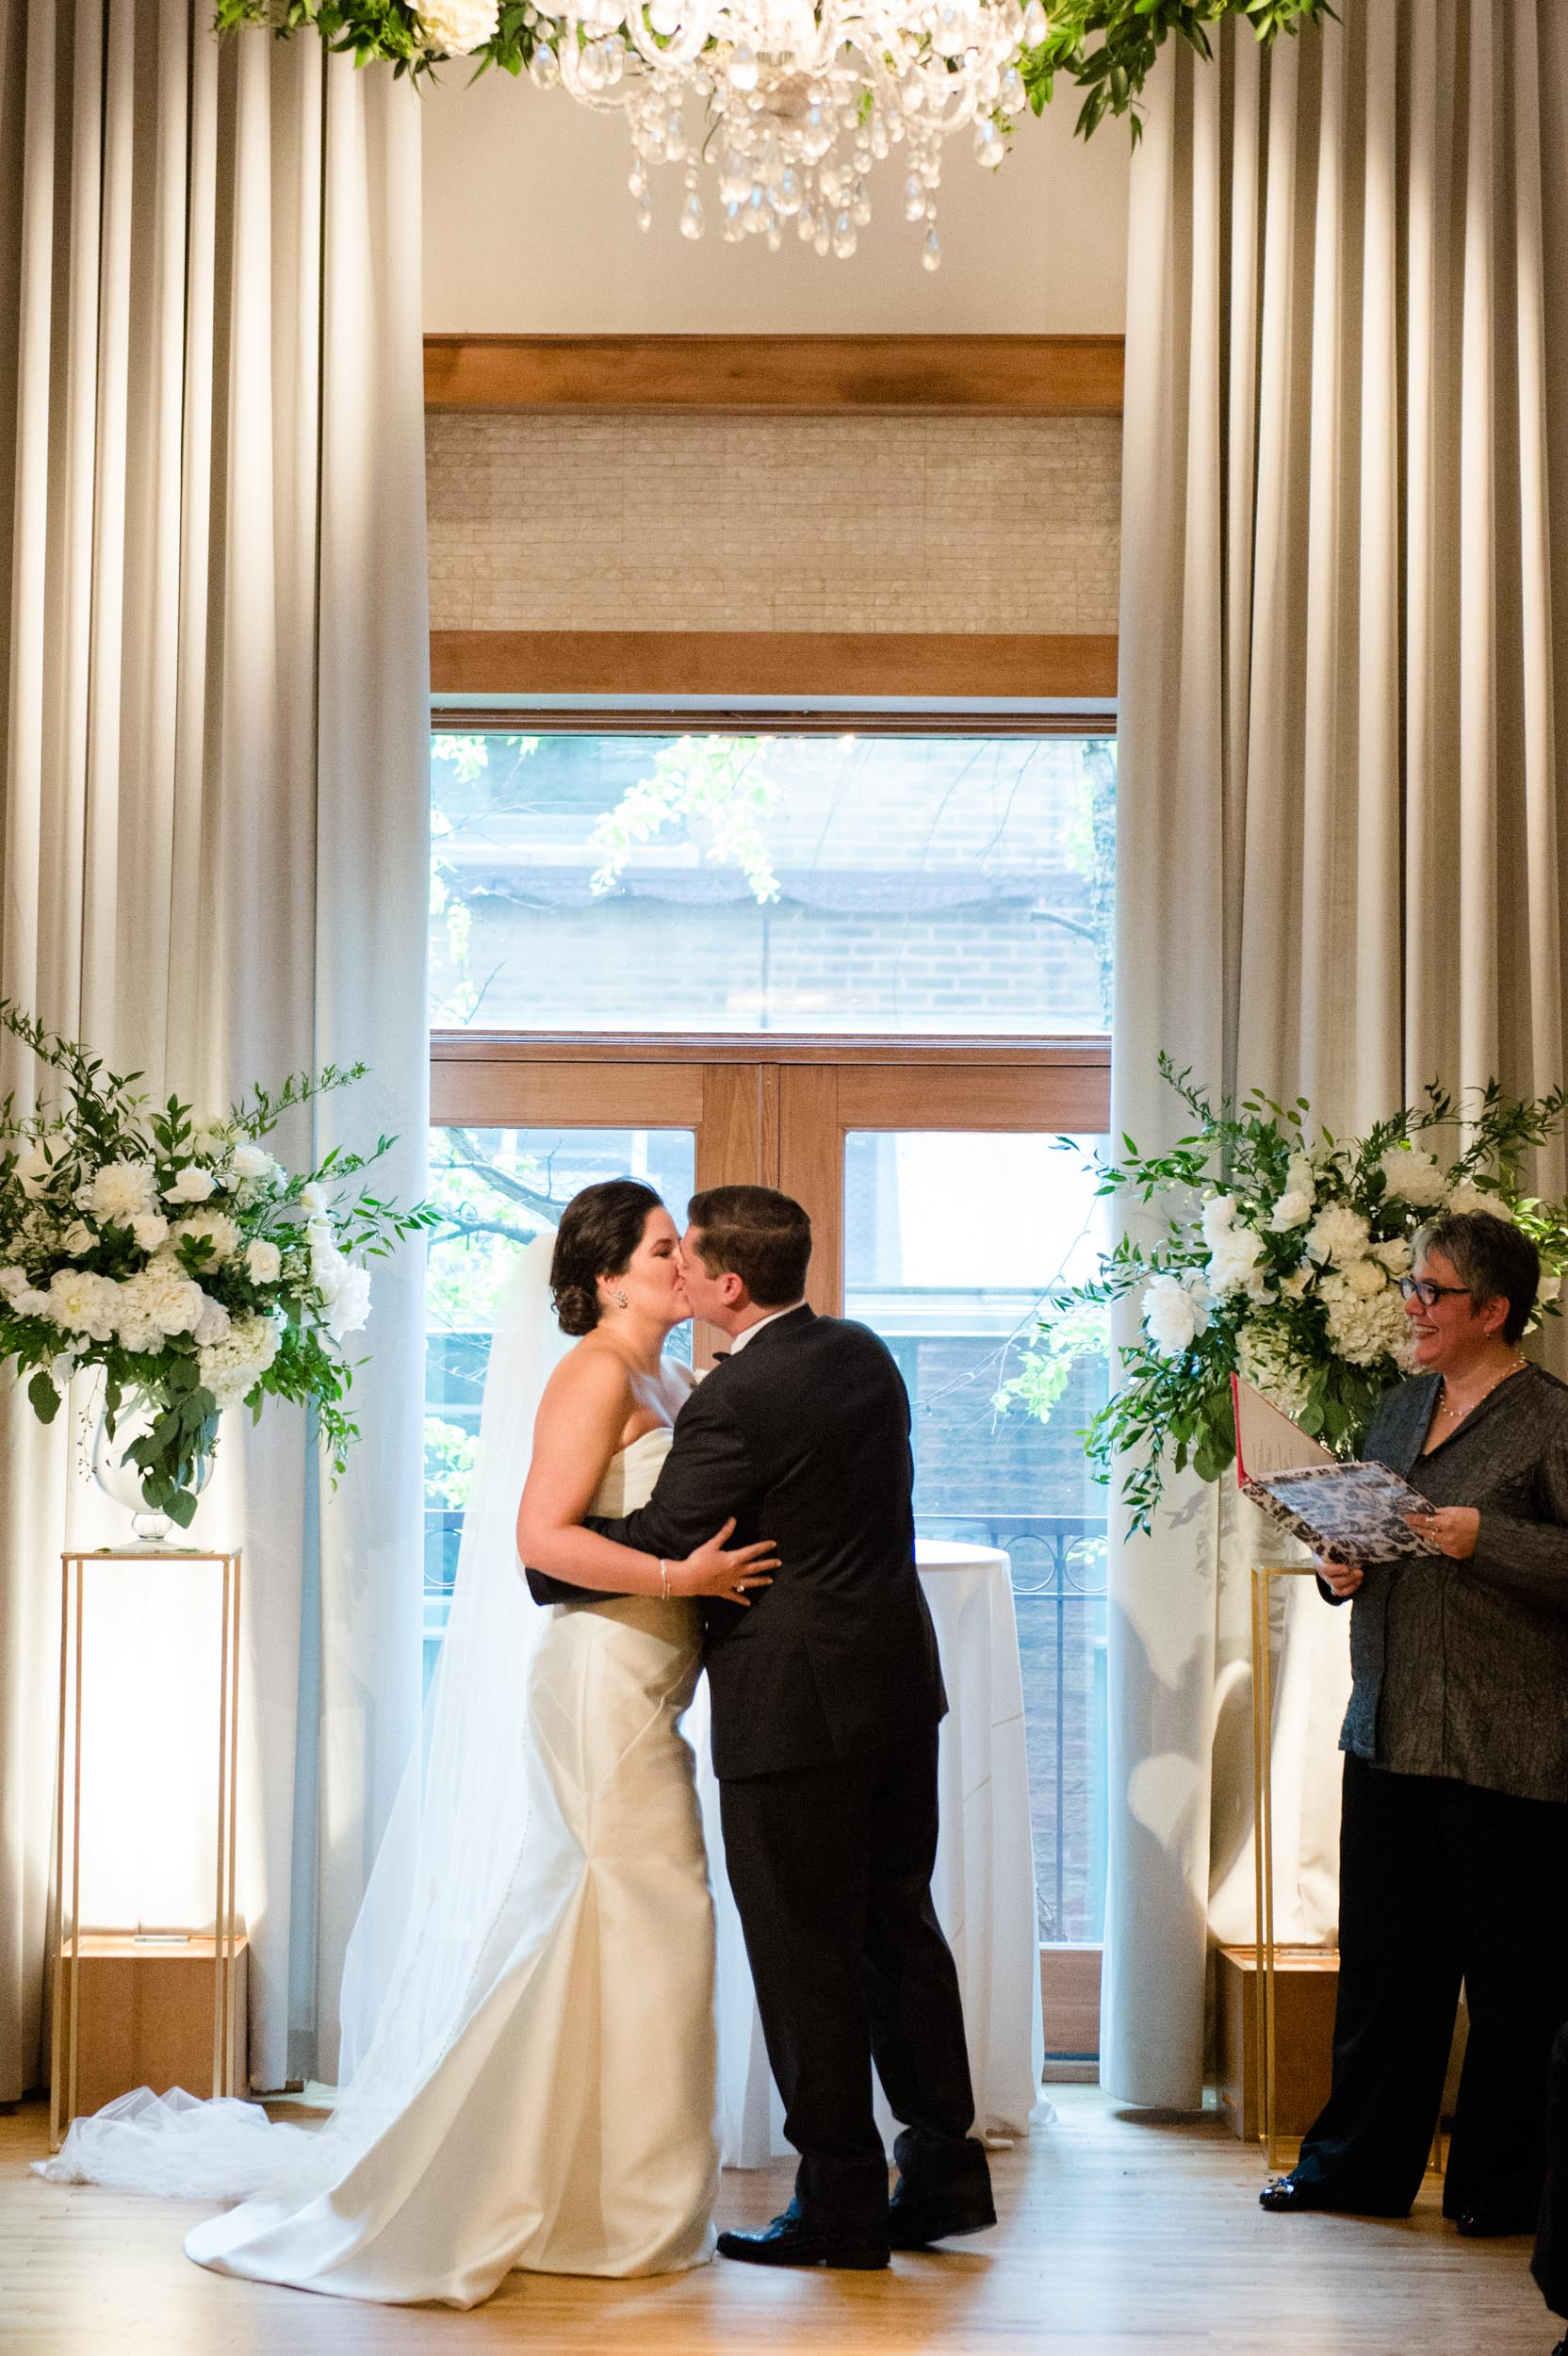 This Ivy Room Chicago wedding ceremony featured gold, white, and green accents and florals.